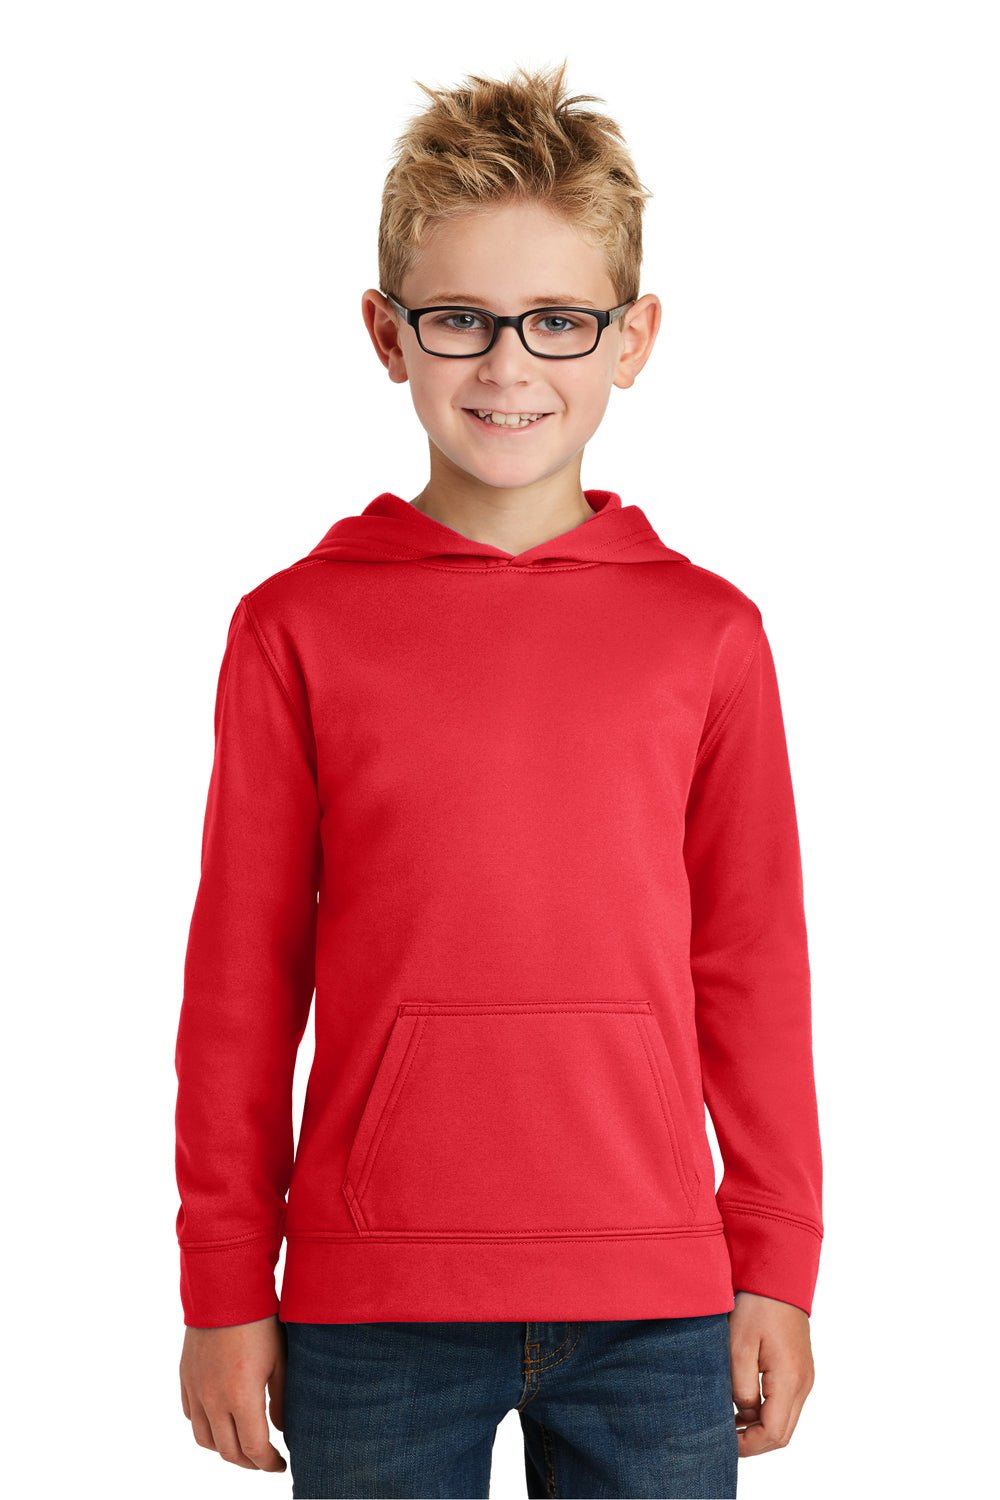 Port & Company PC590YH Youth Dry Zone Performance Moisture Wicking Fleece Hooded Sweatshirt Hoodie Red Front